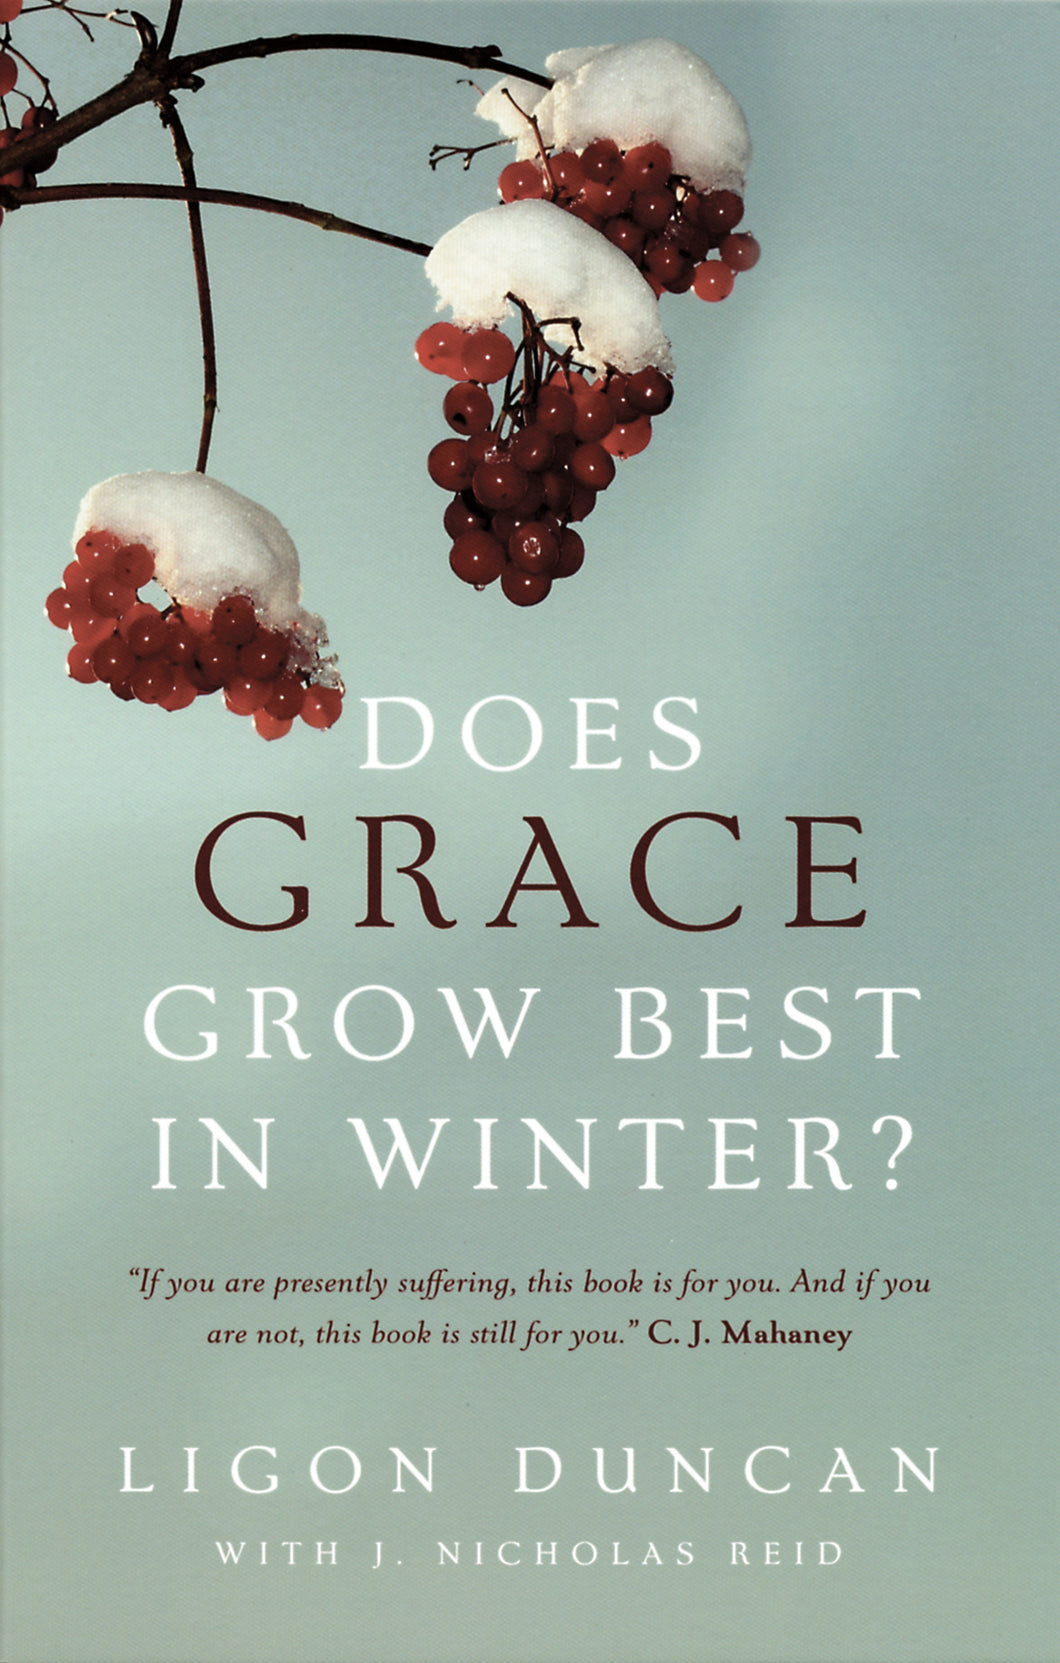 Does Grace Grow Best in Winter? — Paperback